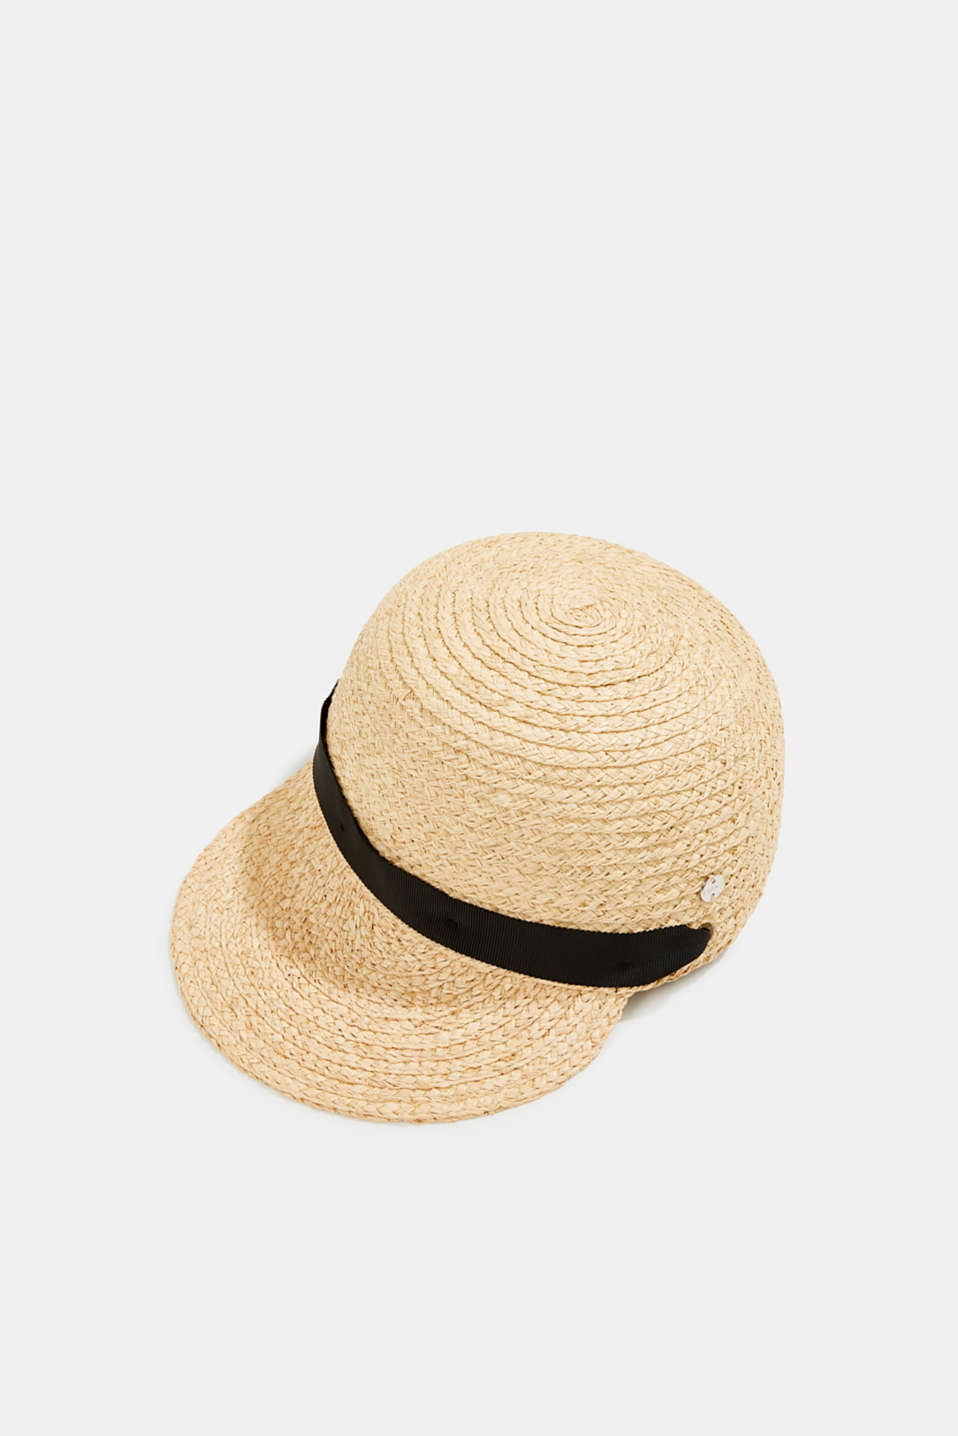 Esprit - Hand-made straw cap